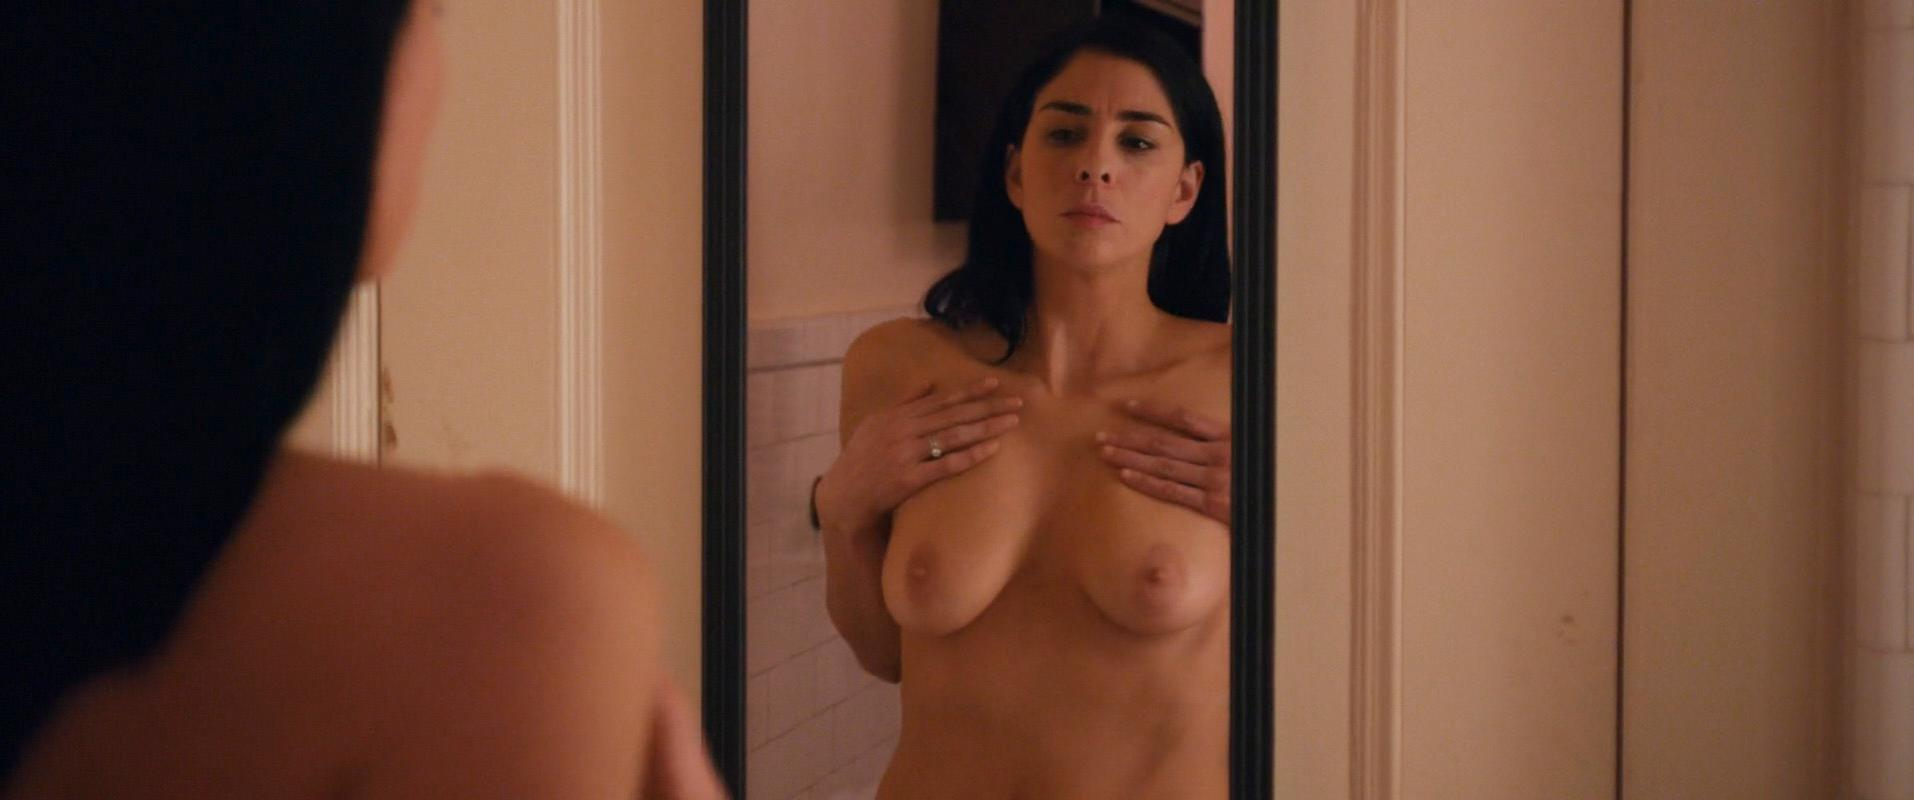 Have sarah silverman nipple slip